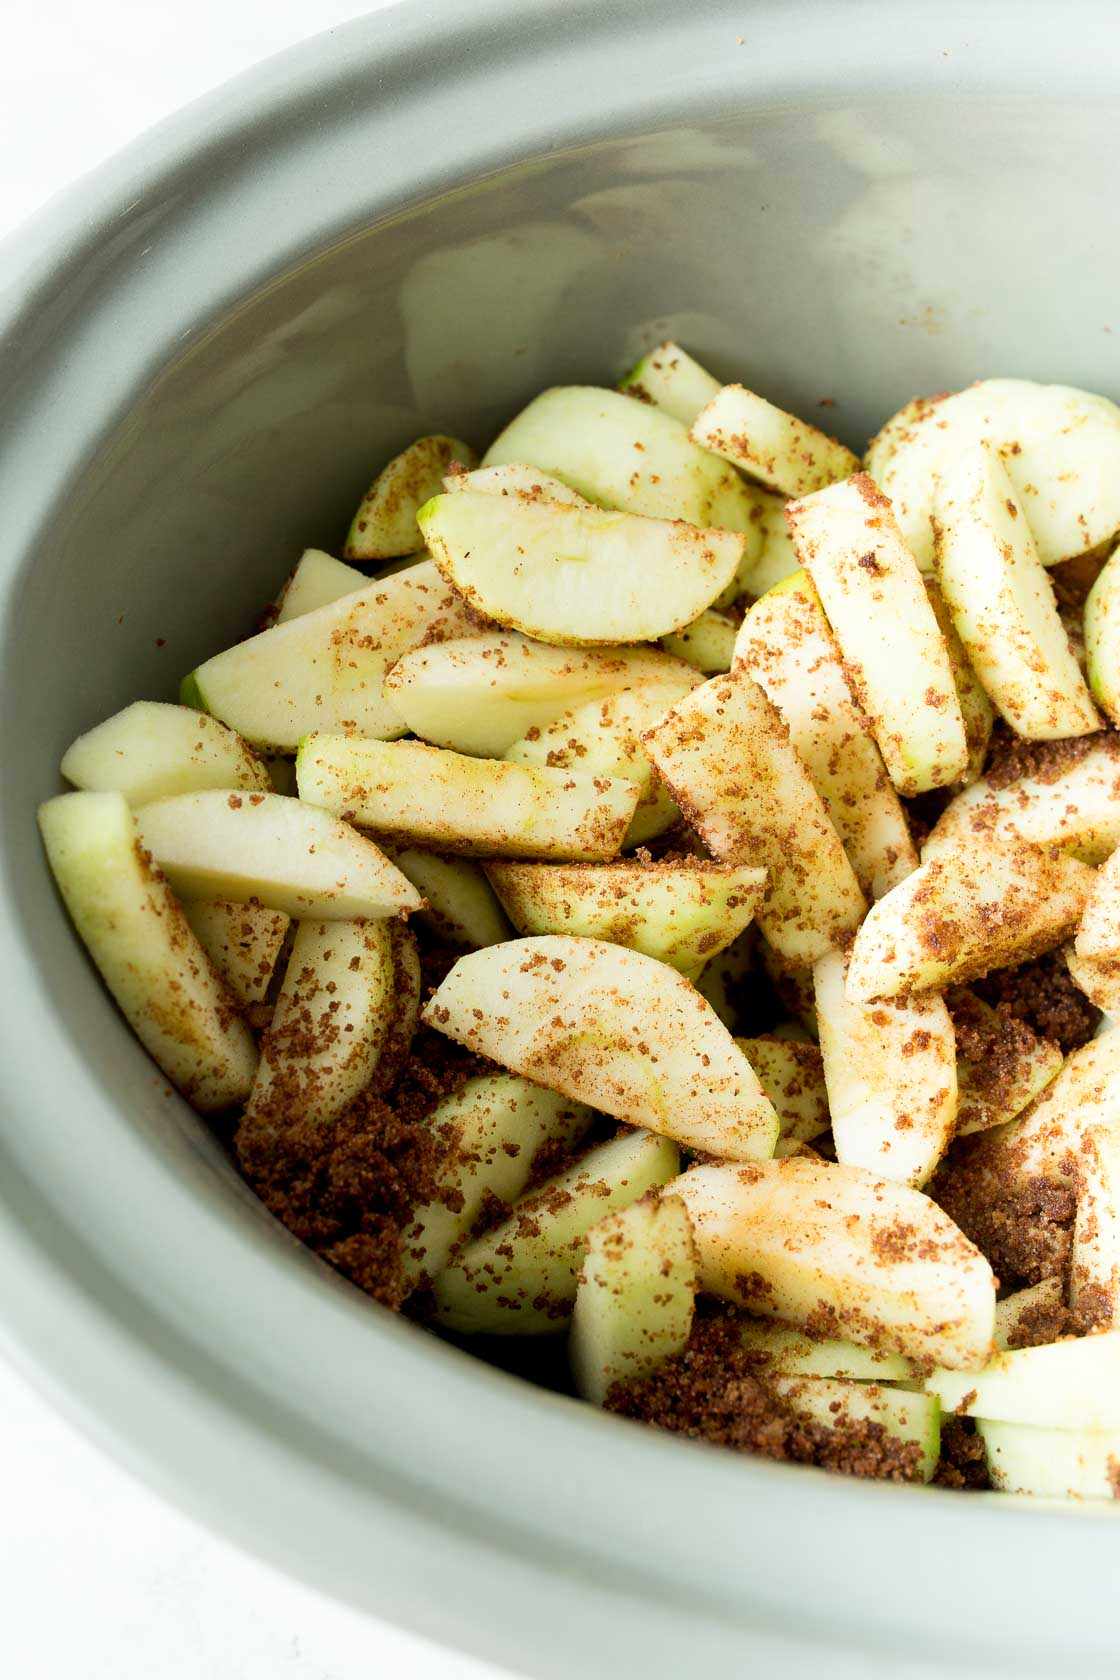 Sliced apples in slow cooker before cooked